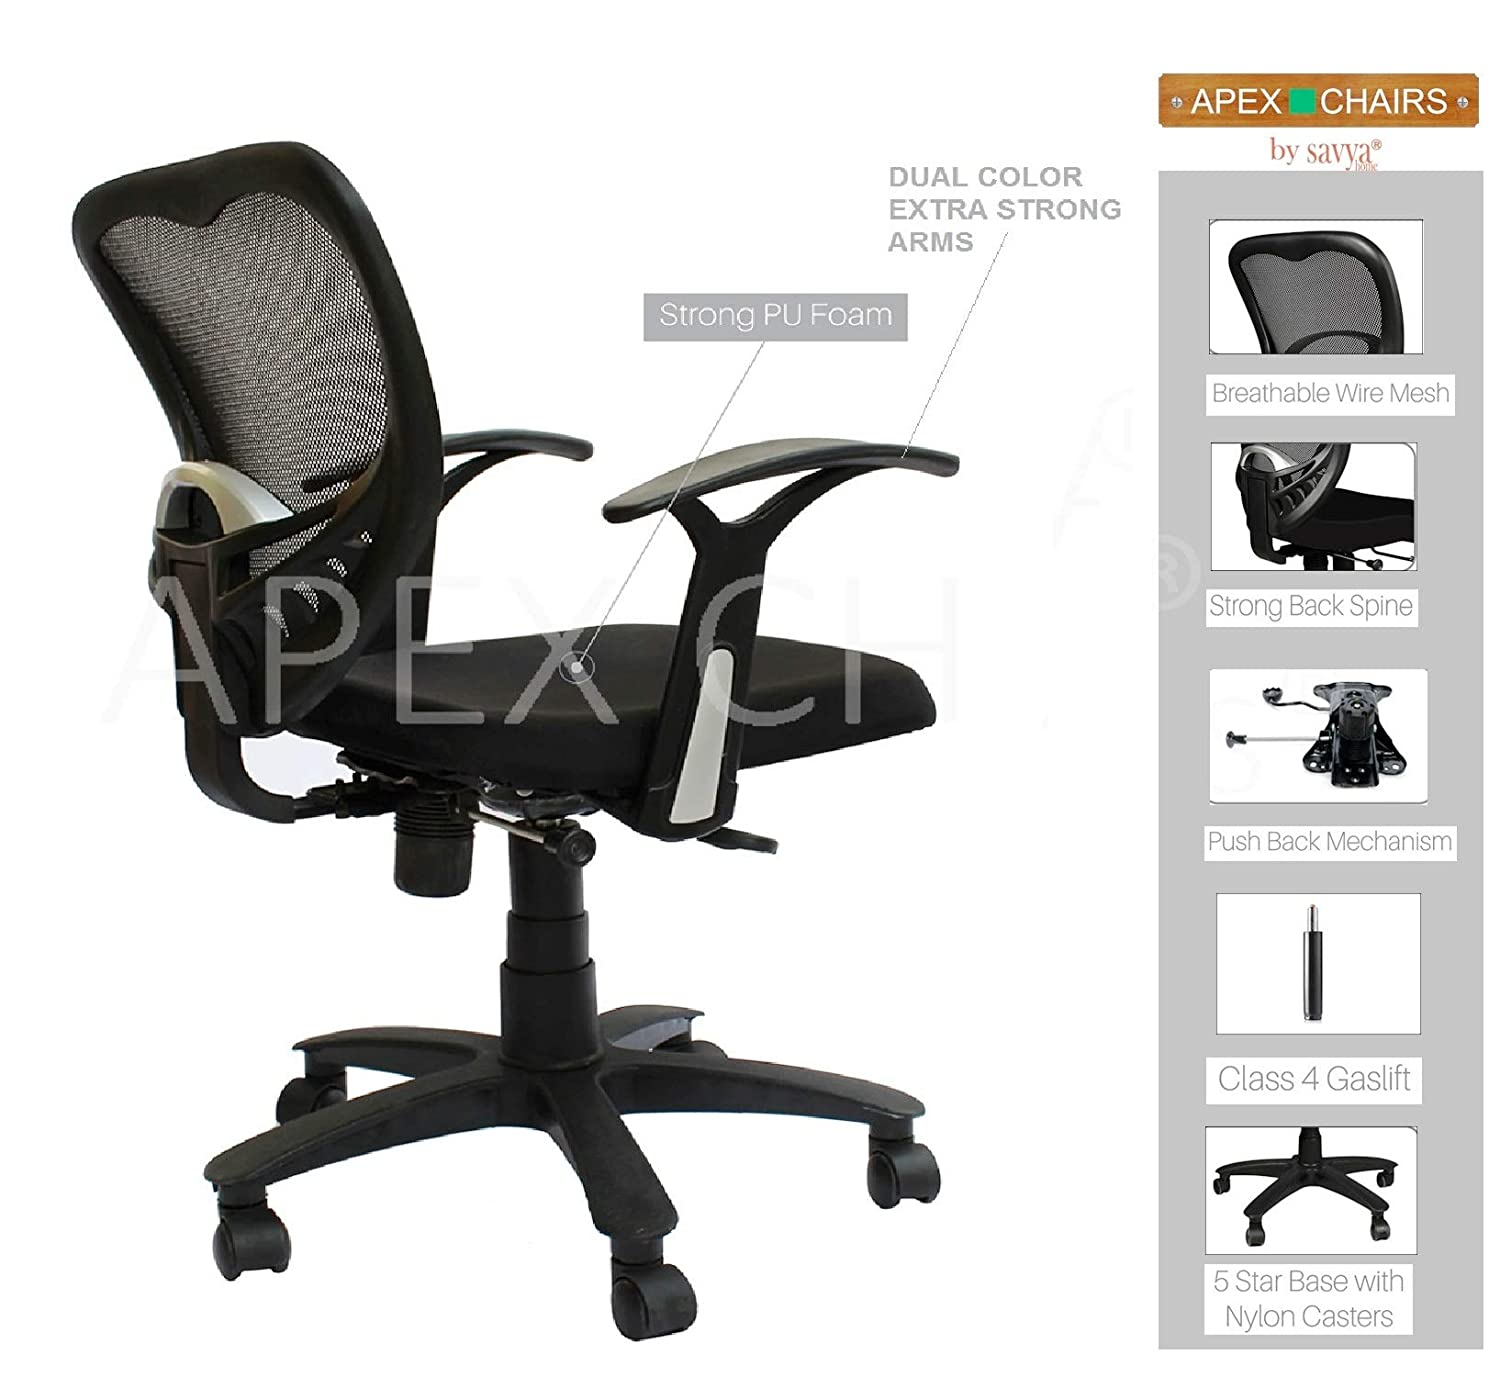 APEX Chairs